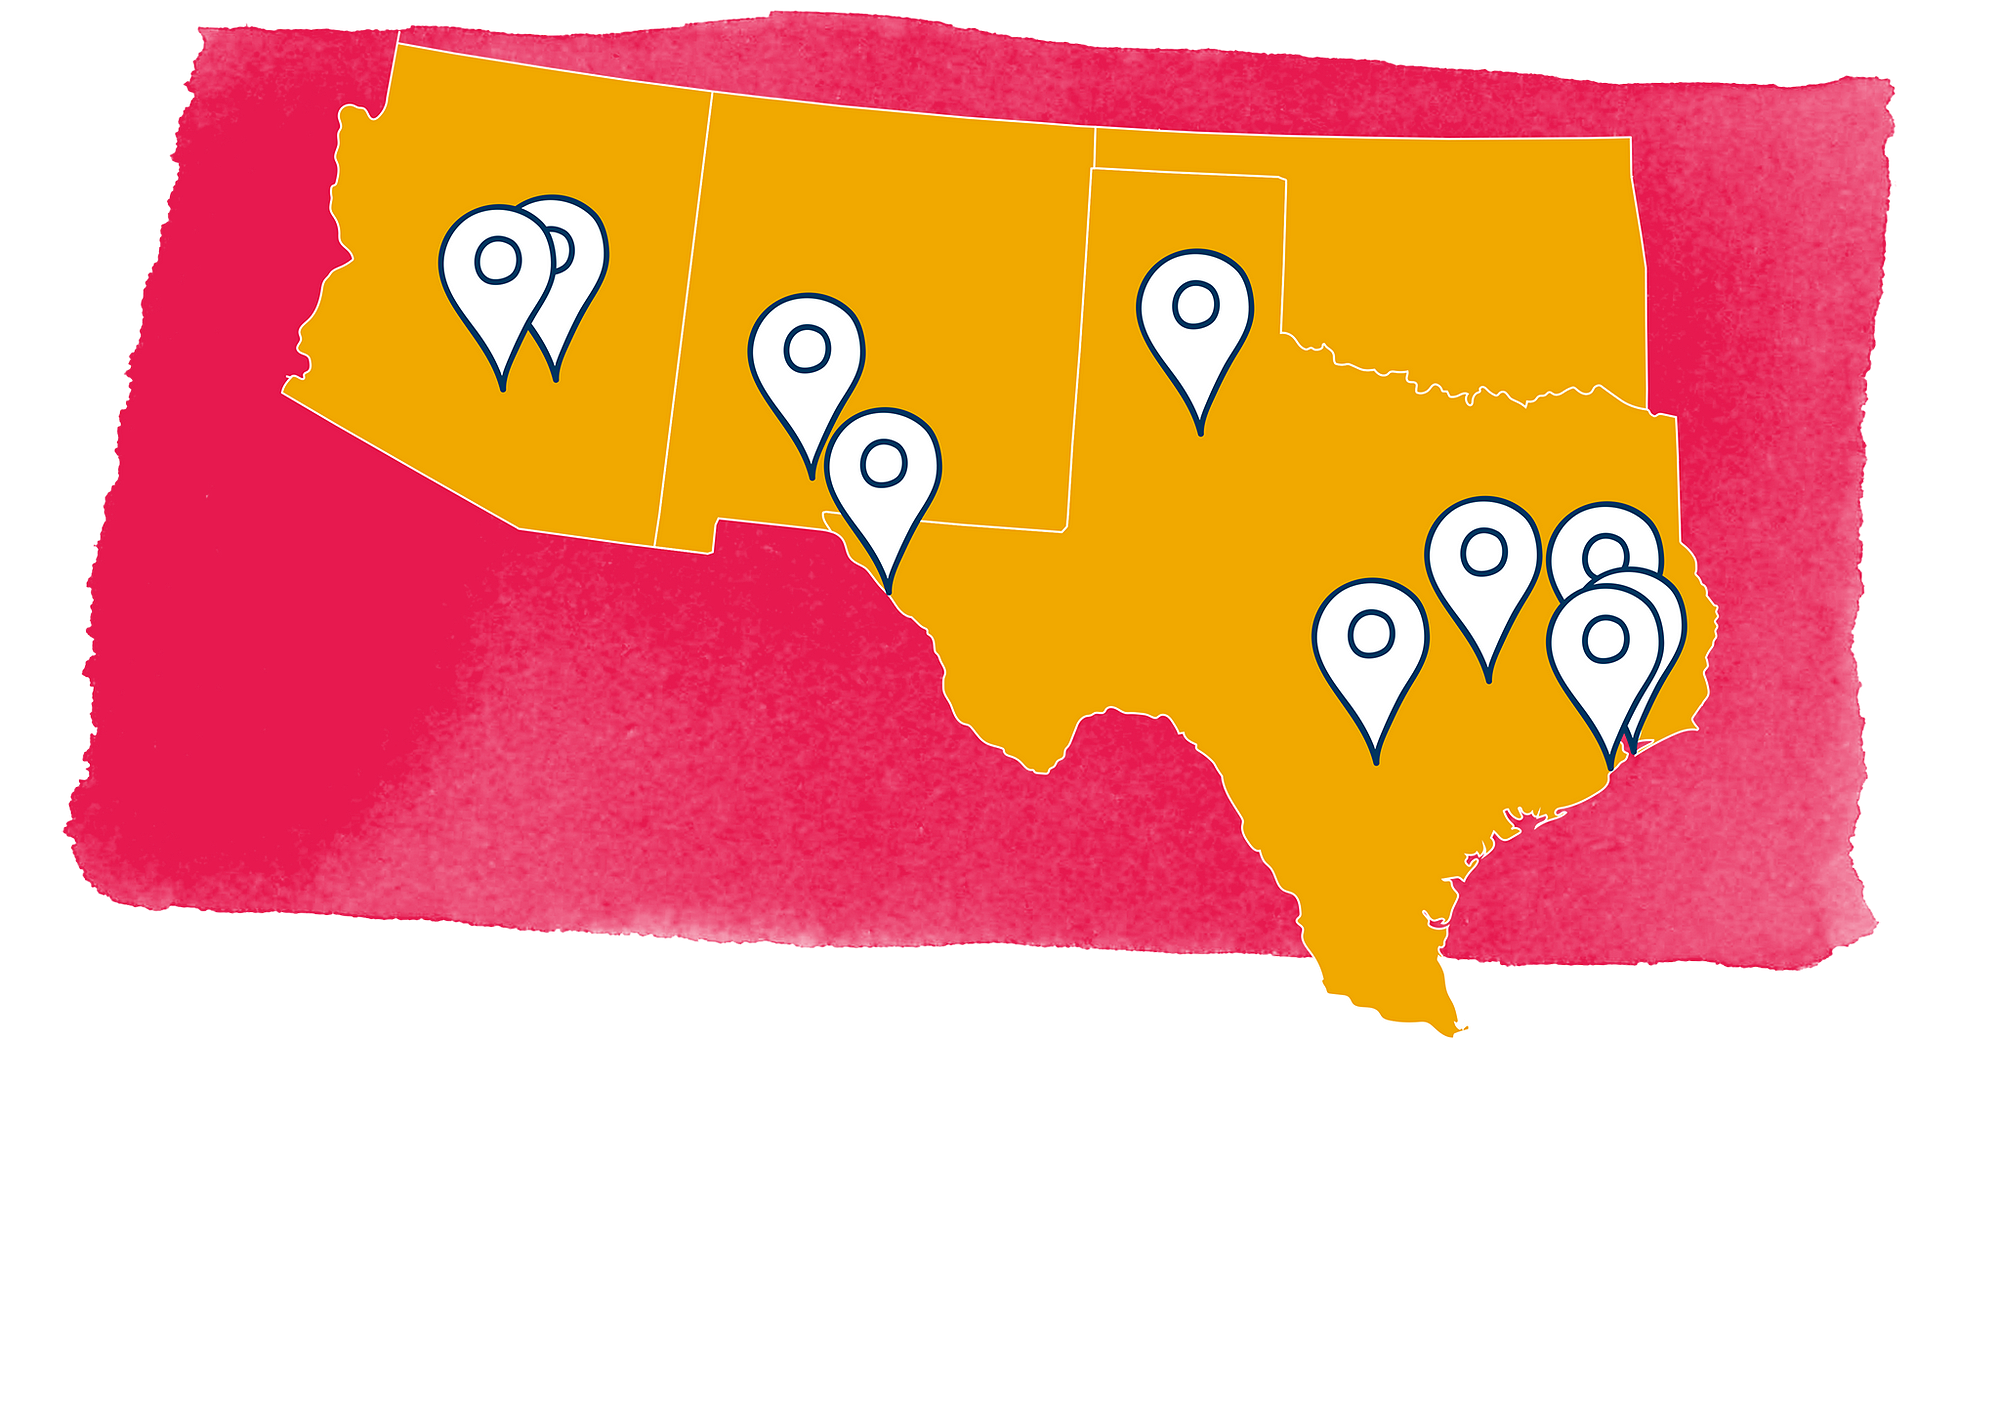 US southwest region map with pins